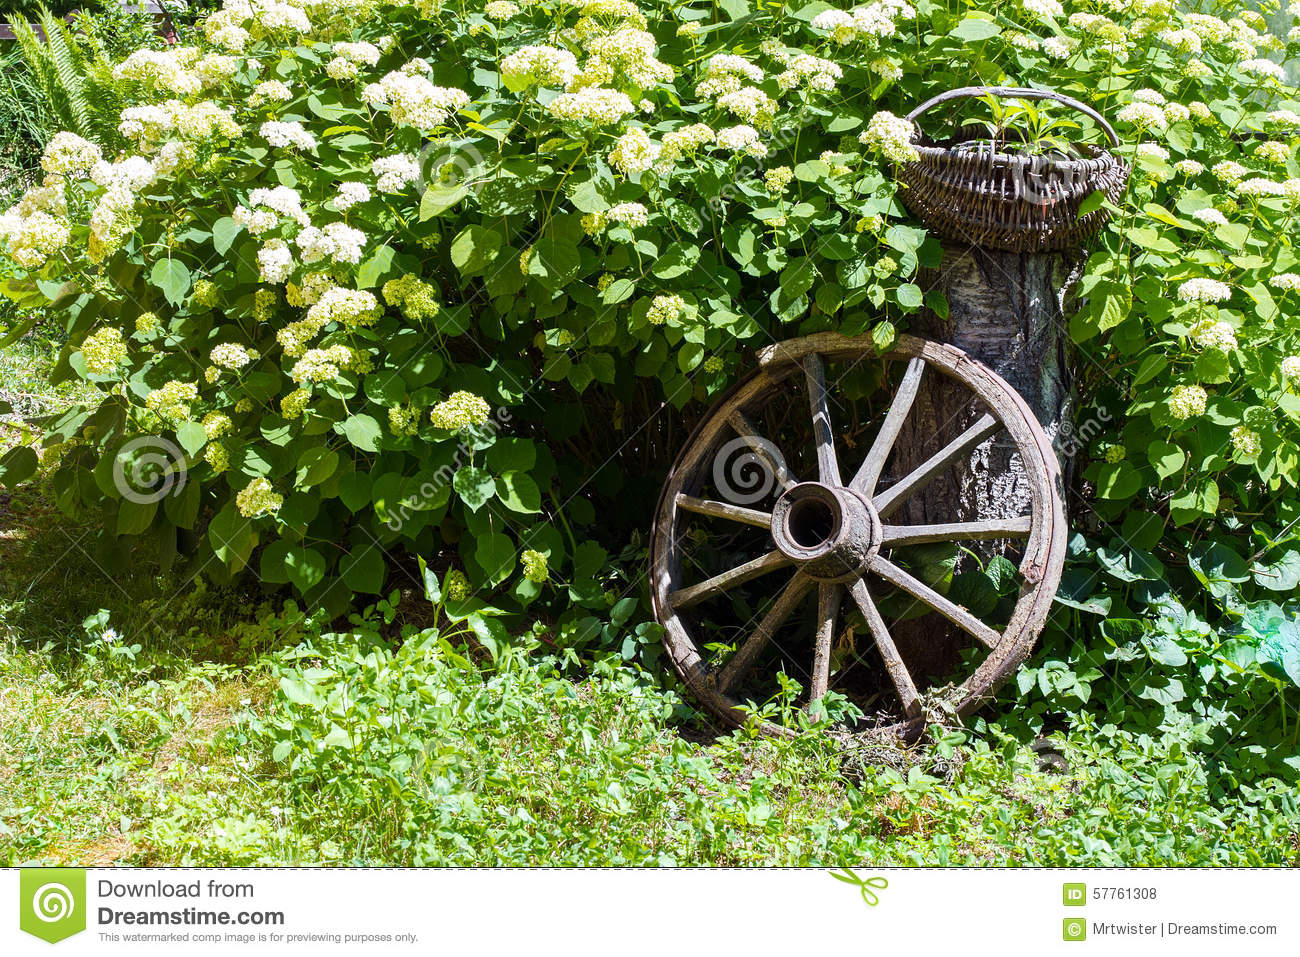 ... Wagon Wheel Home Decor Wagon Wheel Decor Garden U2013 Home Design And  Decorating ...